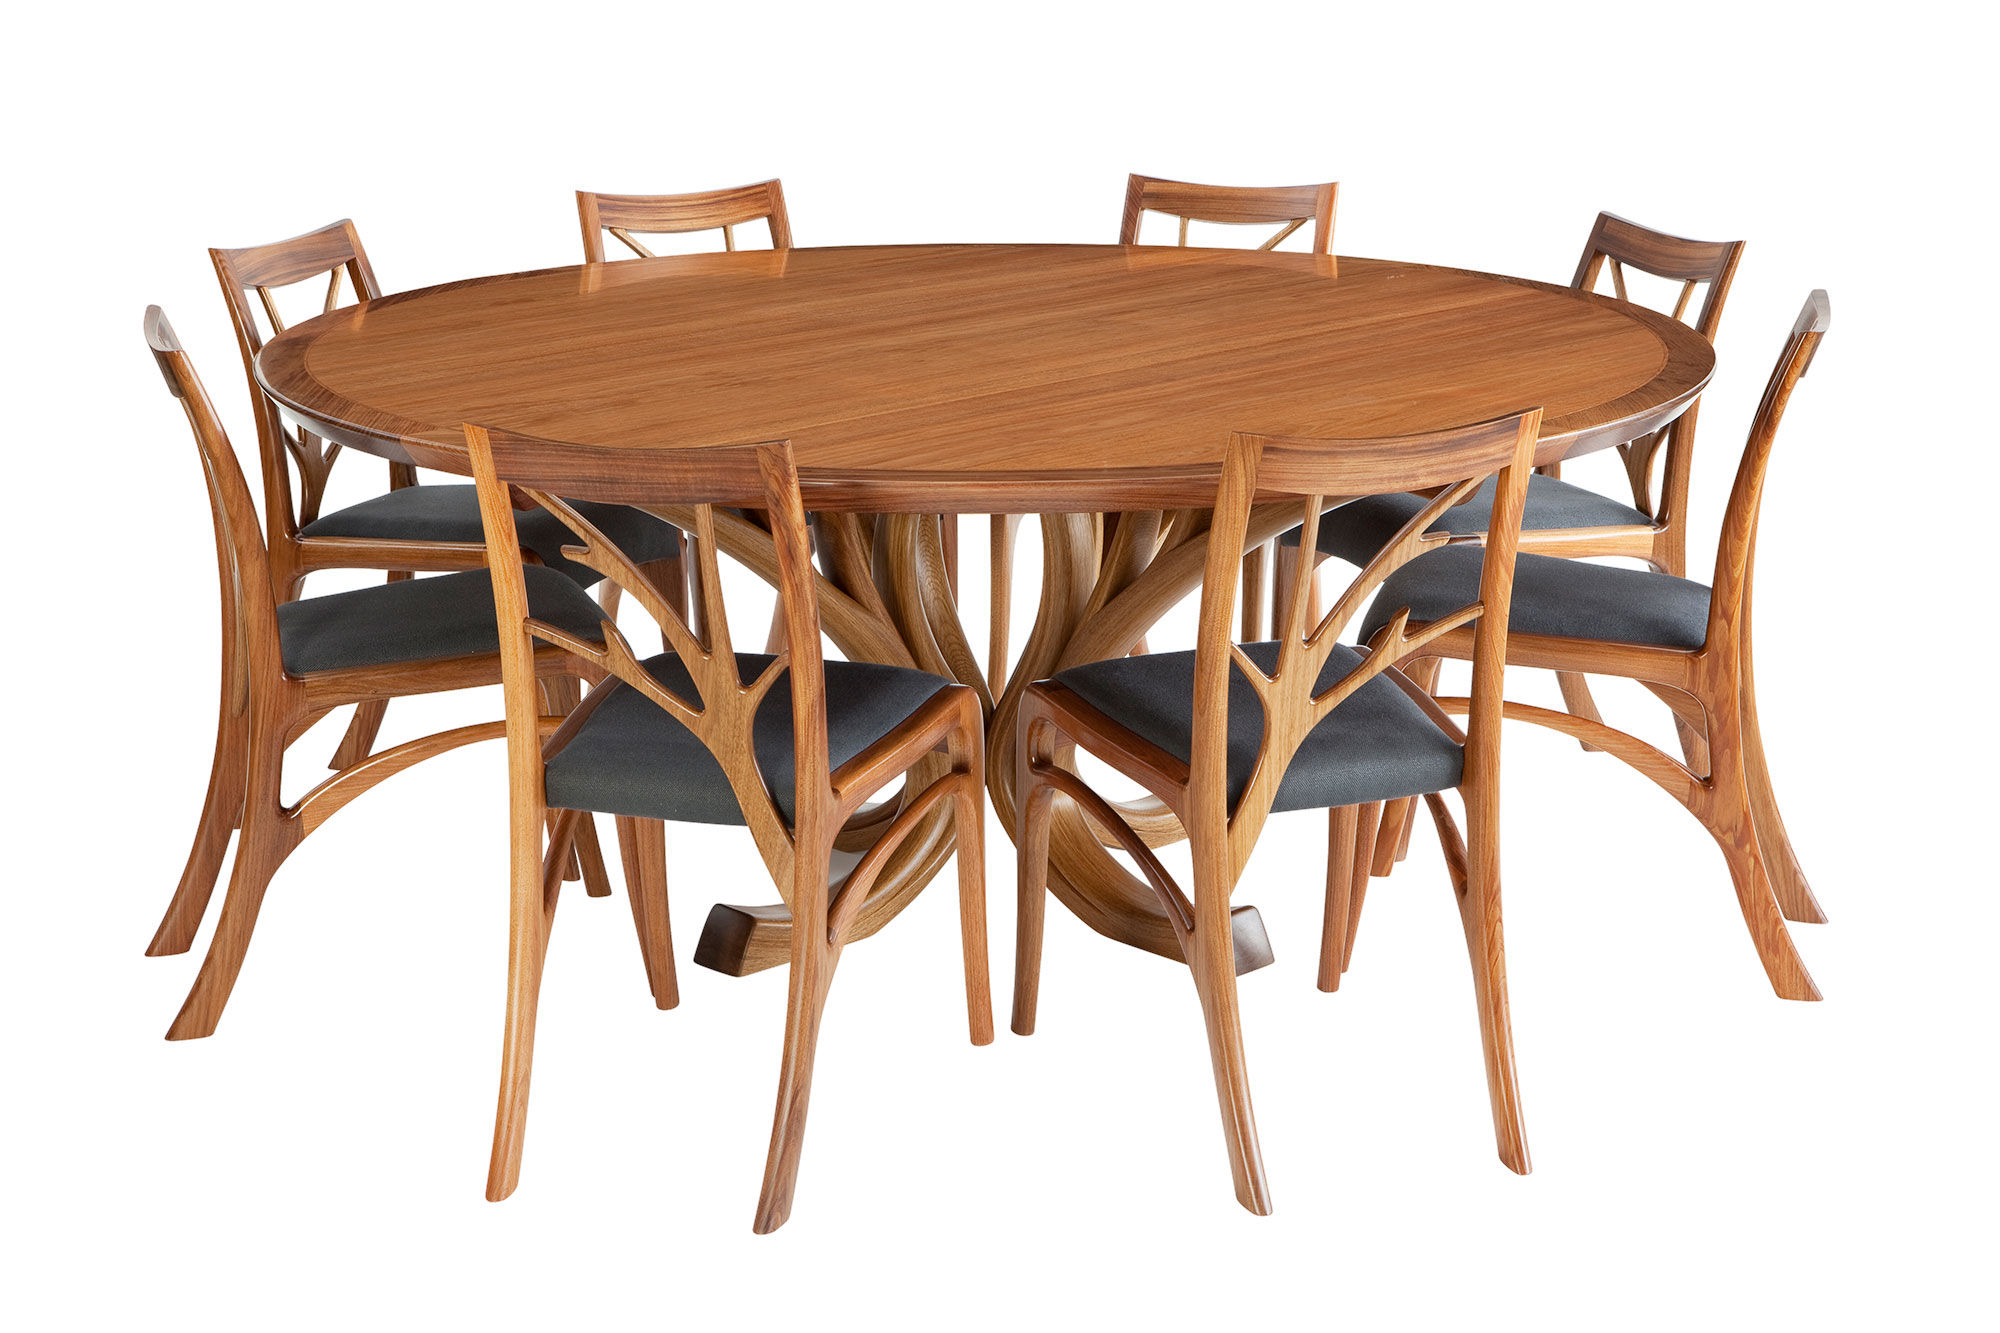 dining room furniture brisbane | Gallery – CUSTOM FURNITURE BRISBANE